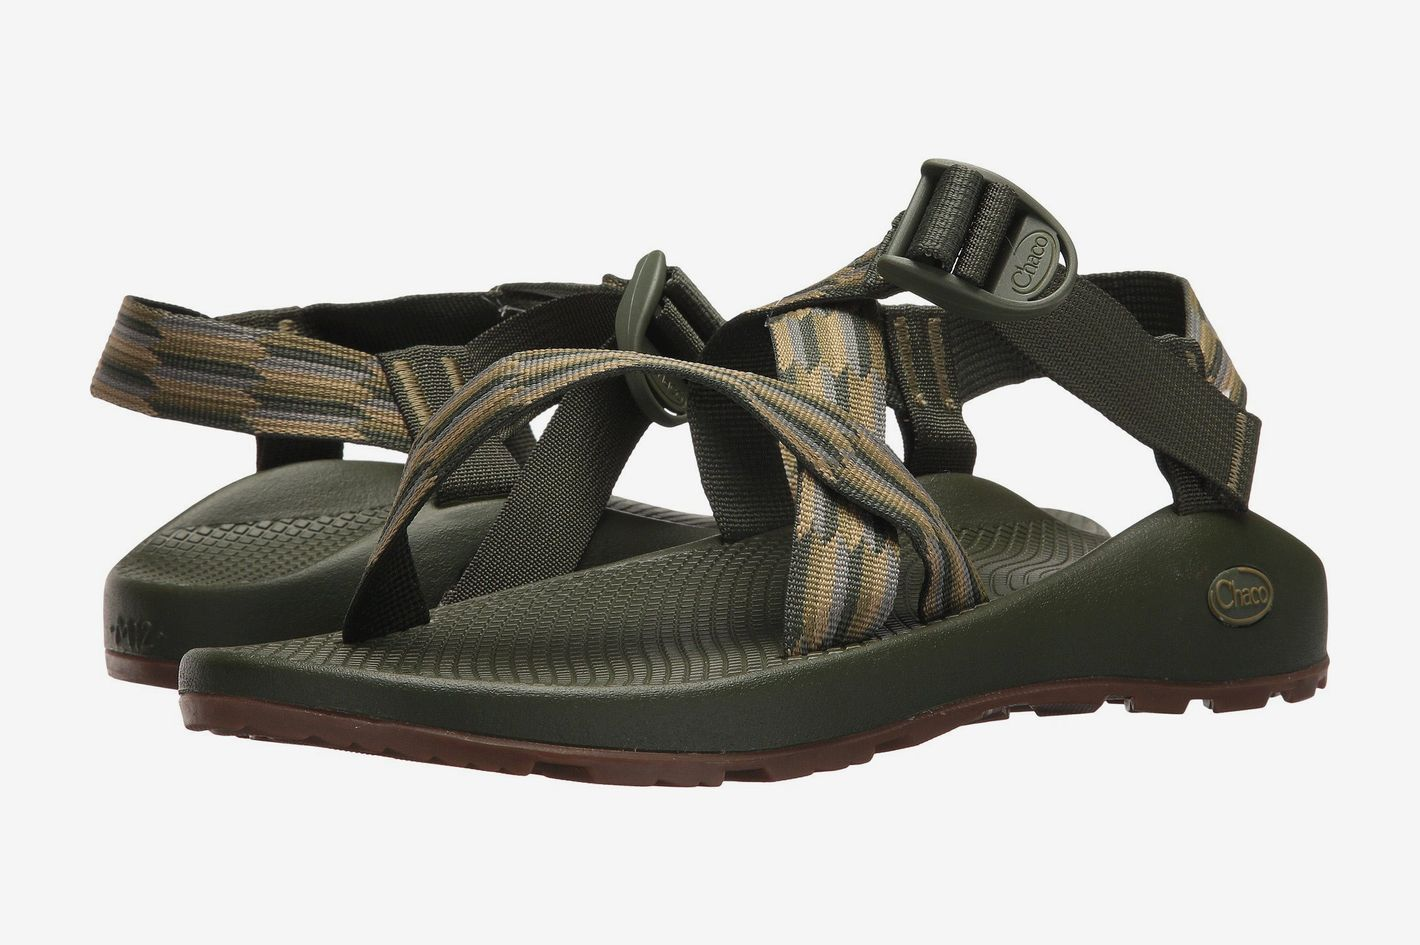 087d664e805fa Best all-around hiking sandal. Men s Chaco Z 1 Classic